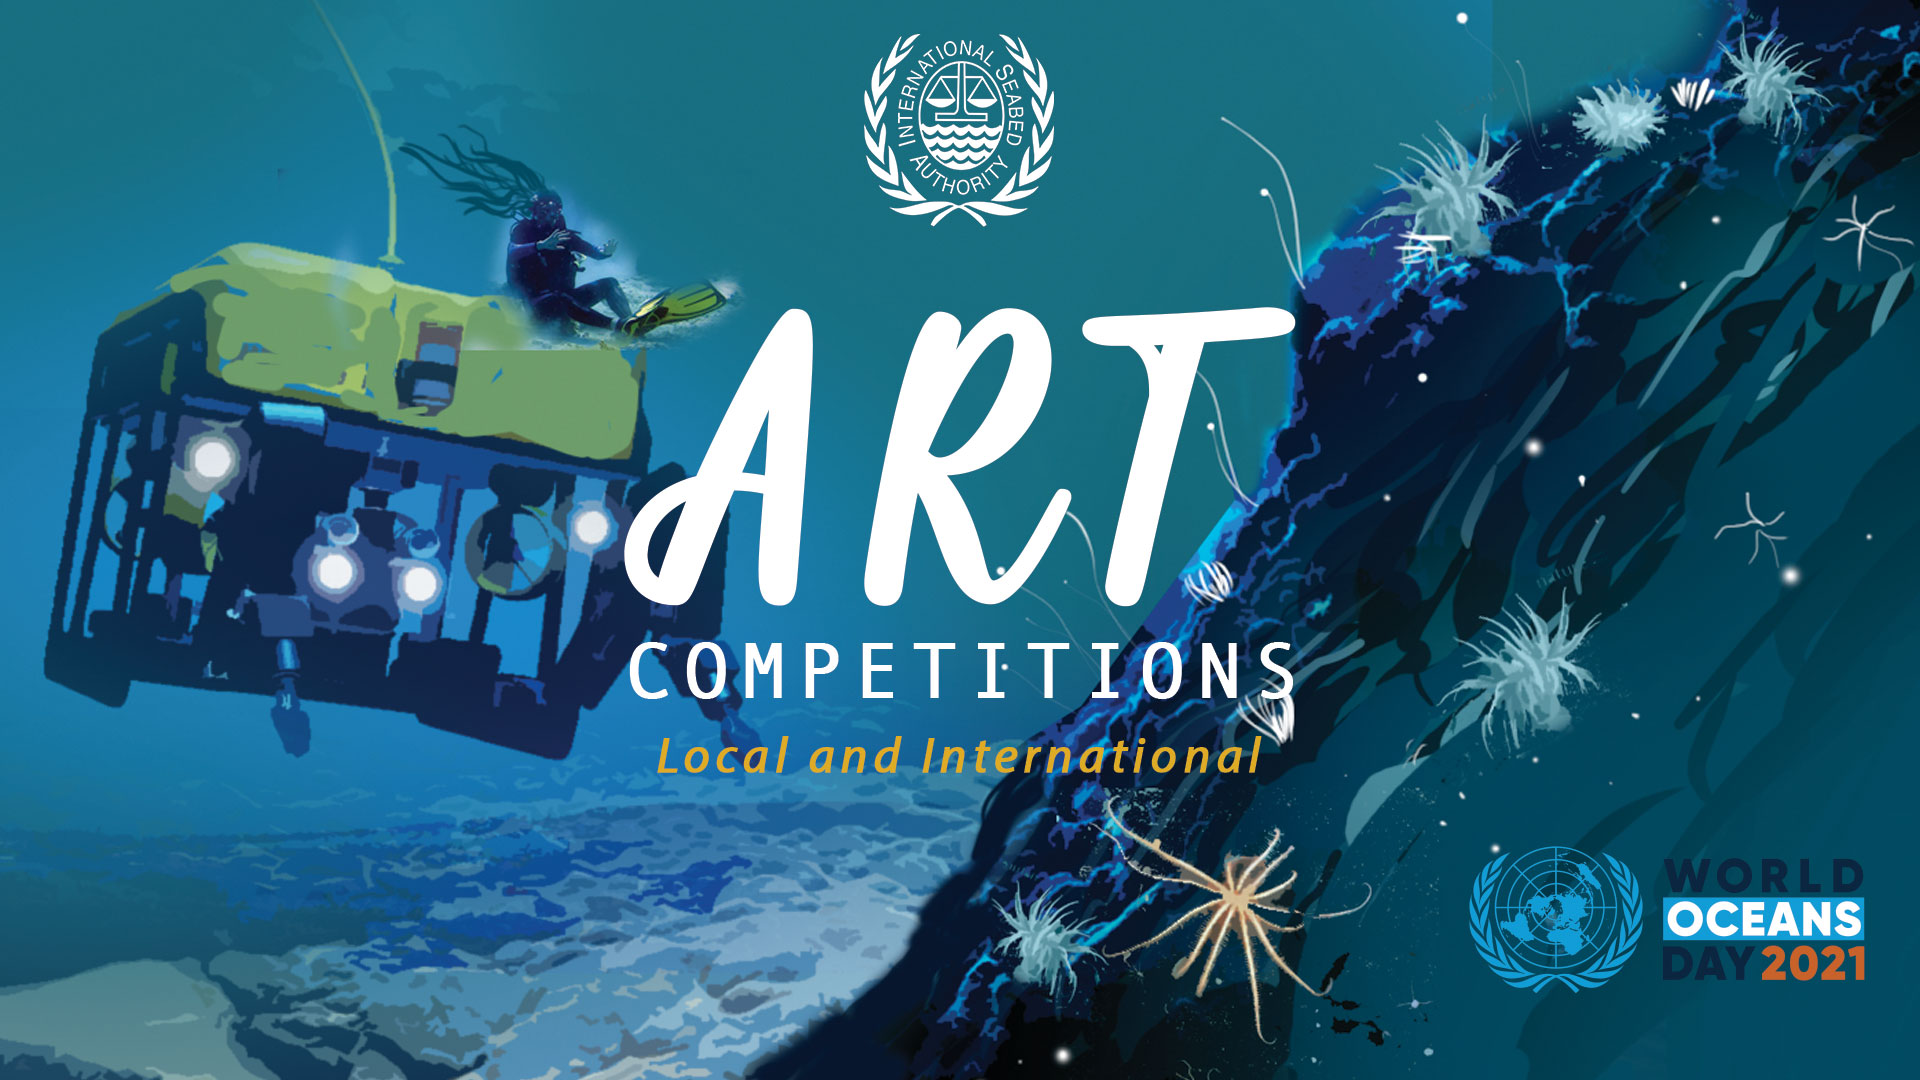 WOD Art competitions